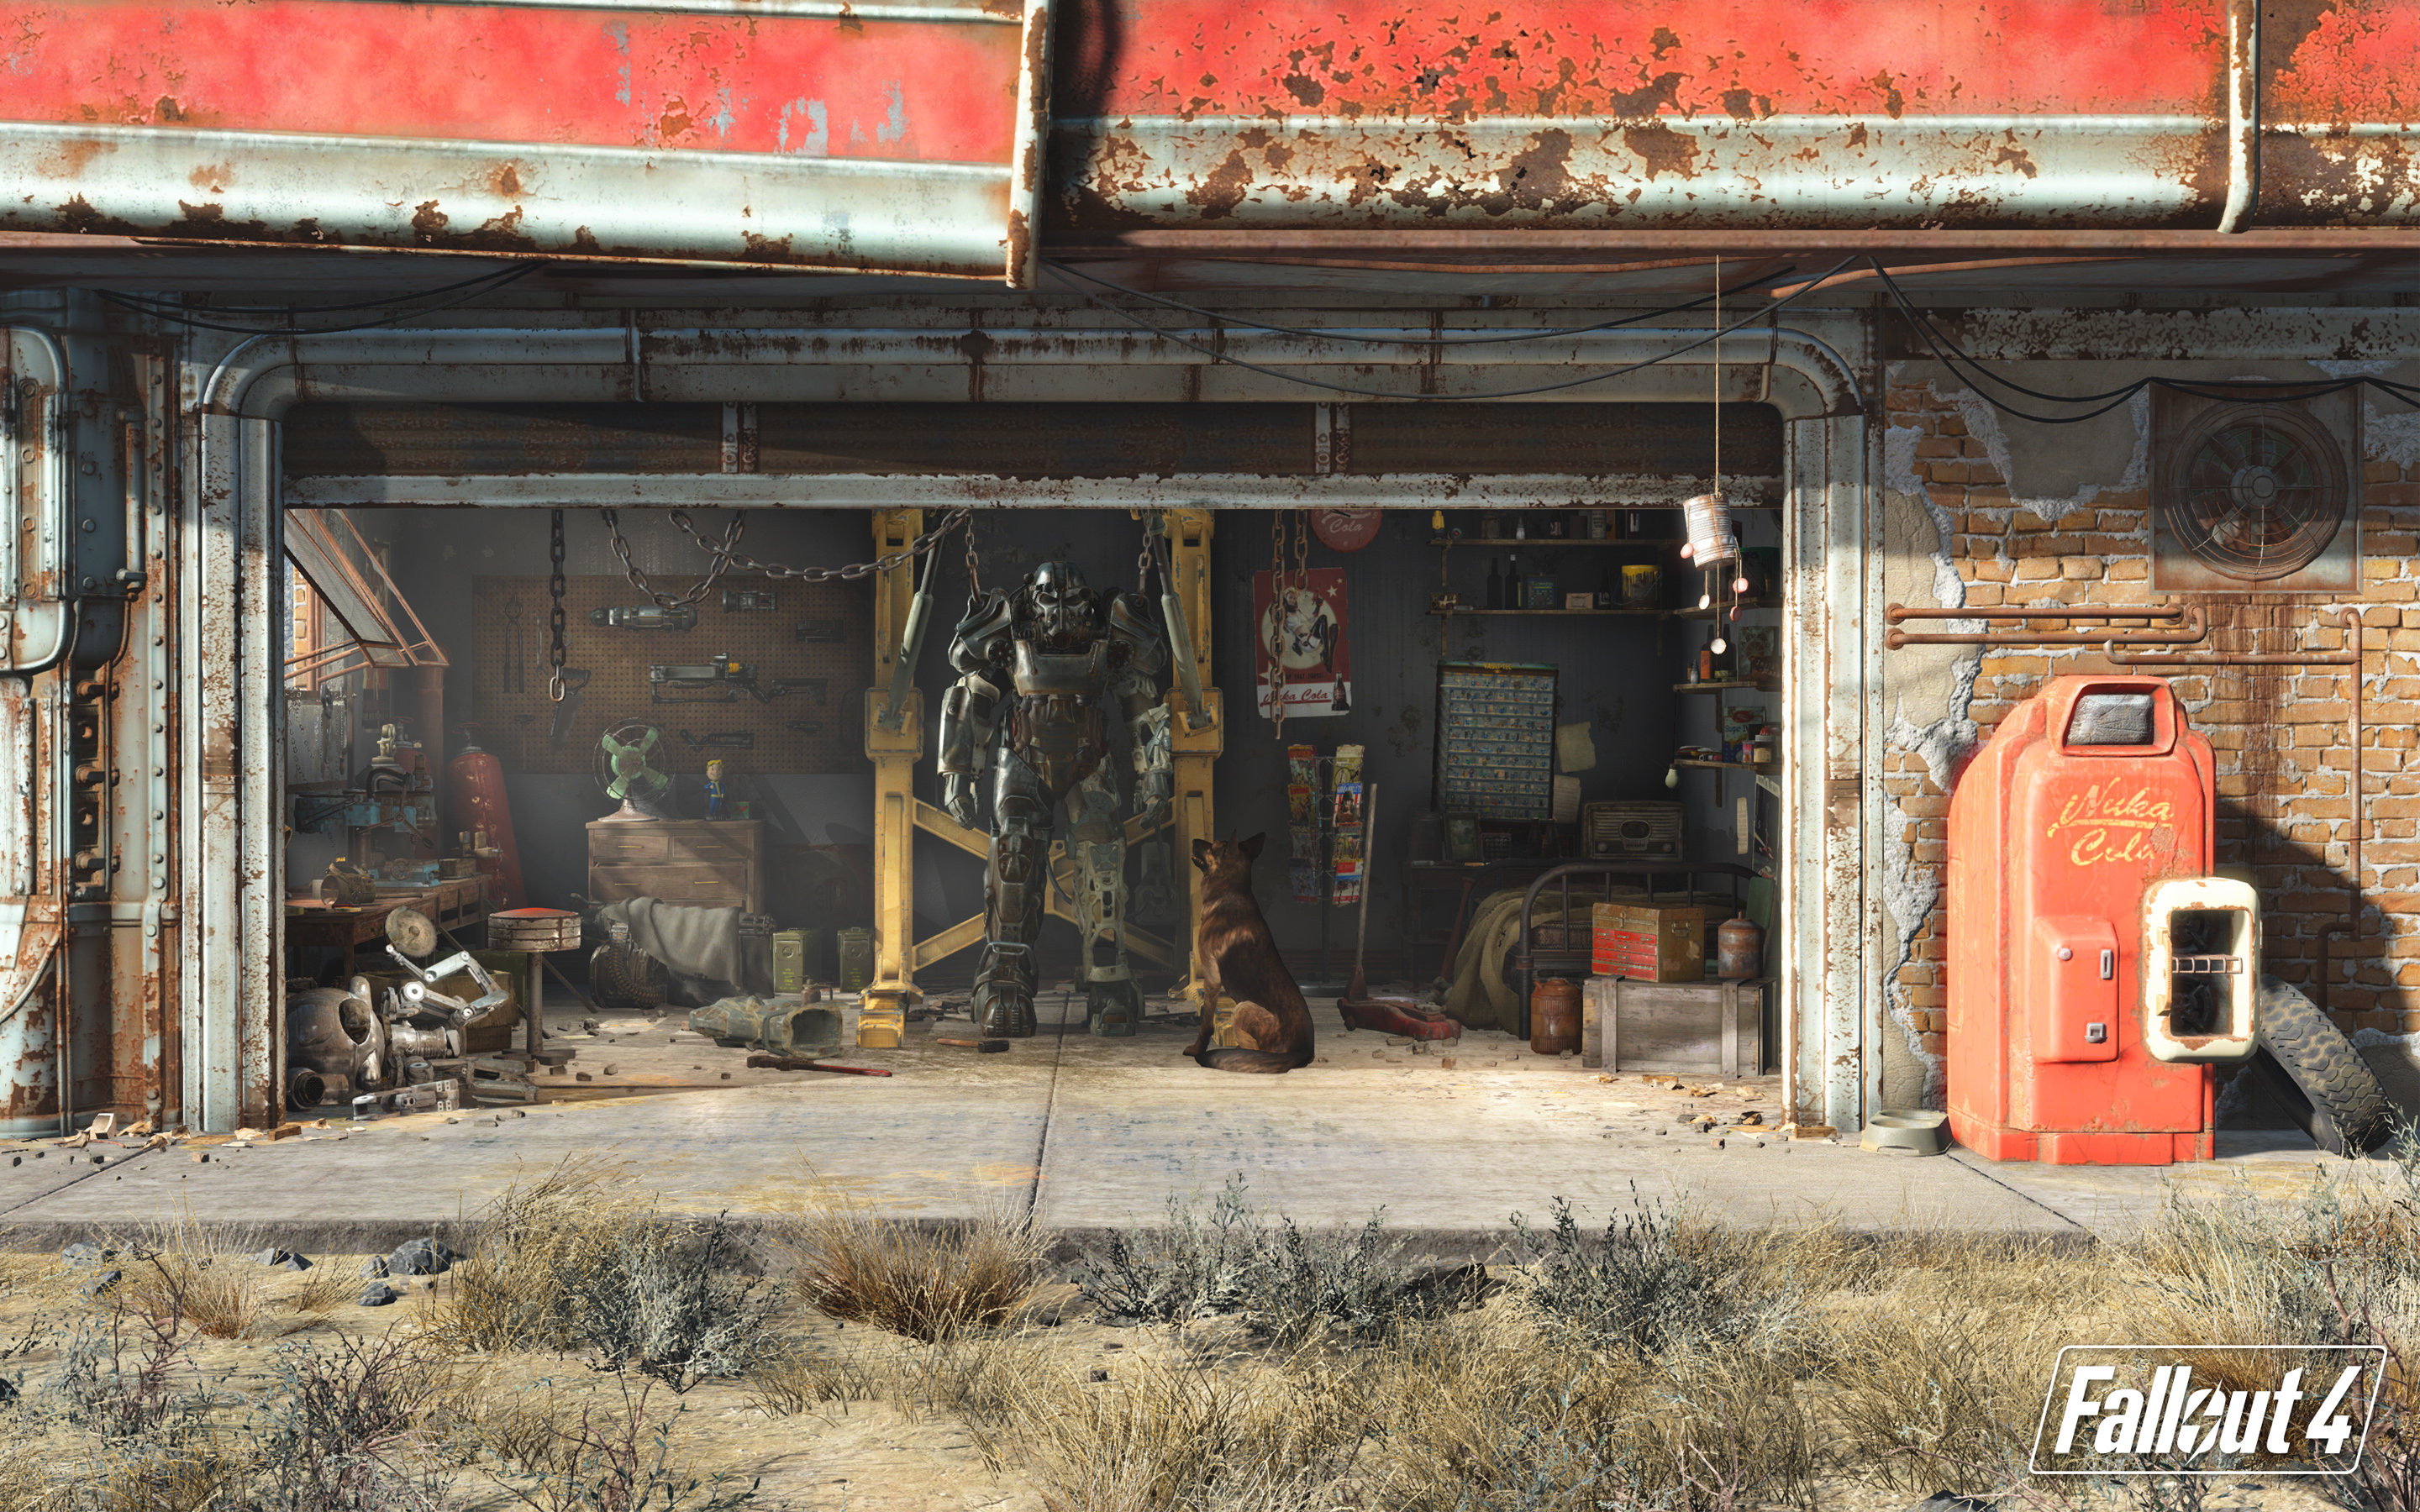 Simple Wallpaper Logo Fallout 4 - fallout_4-widescreen_wallpapers  Graphic_39486.jpg